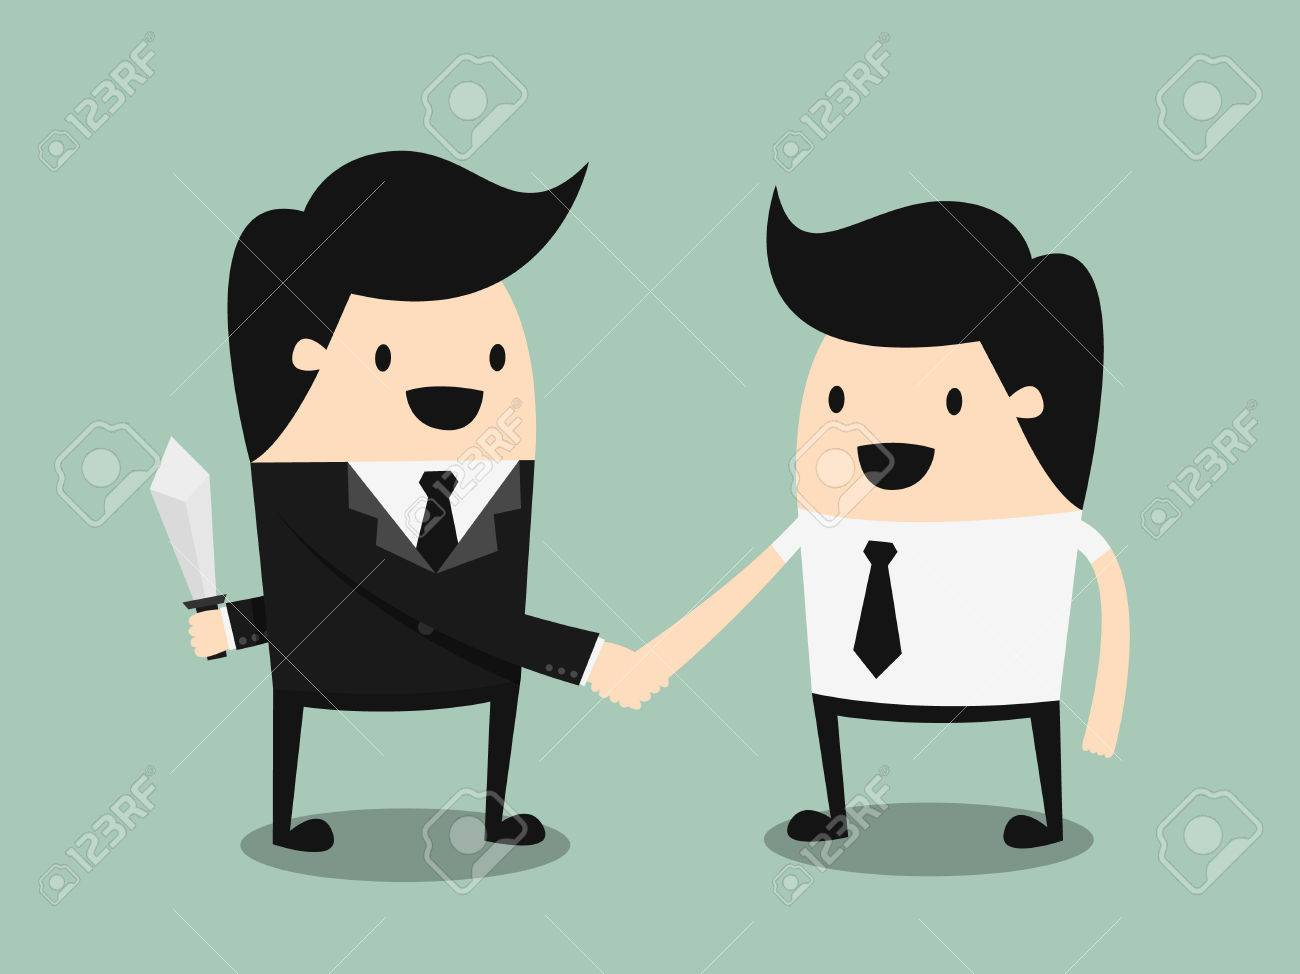 business partners handshaking while another people holding knife behind his back - 26631092